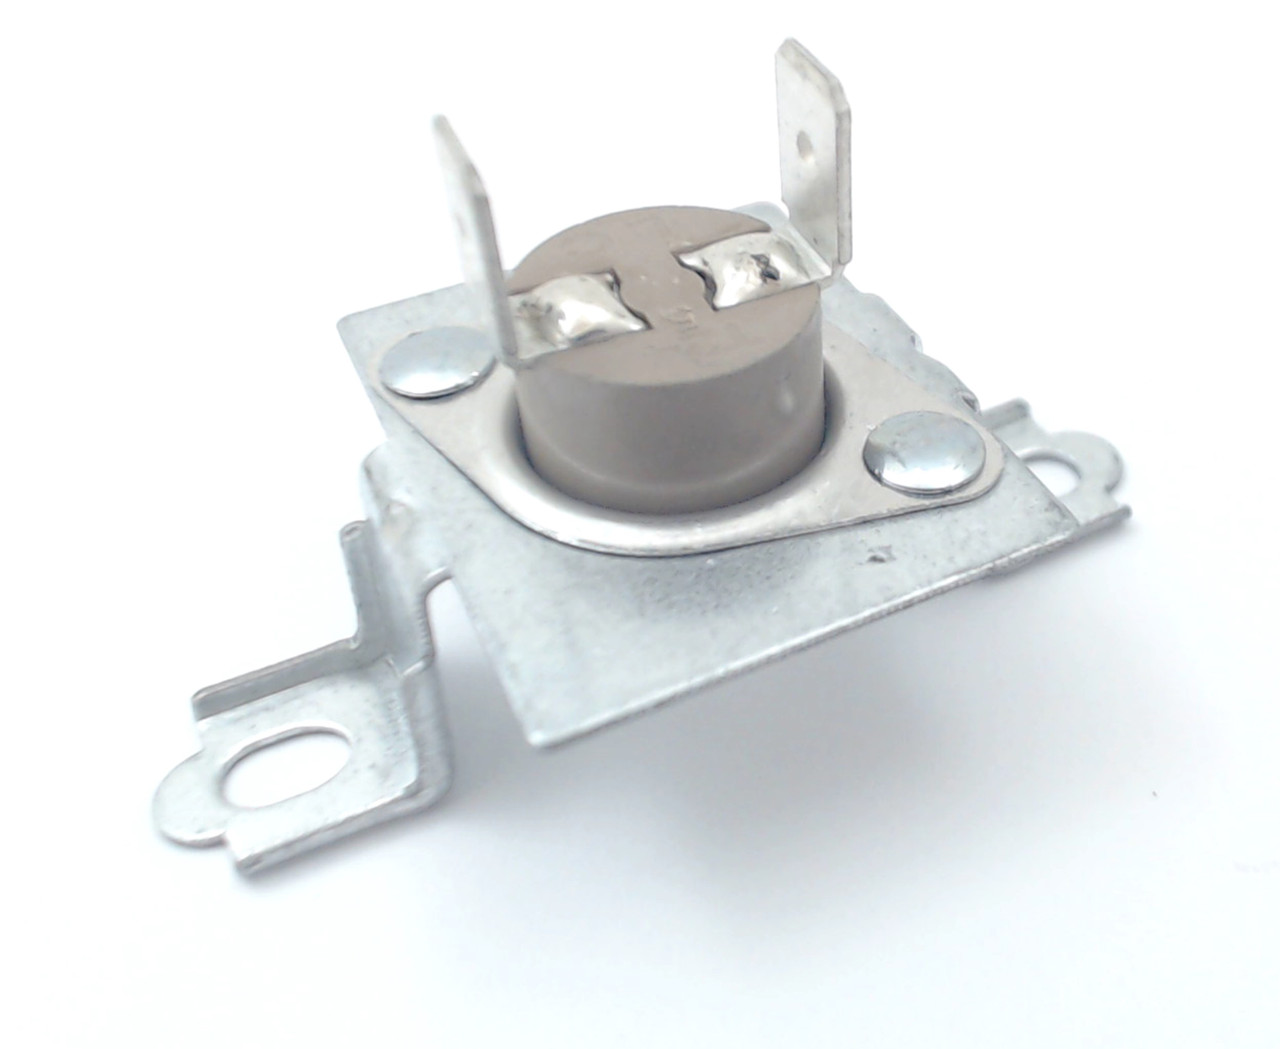 AP5782317 6931EL3002M PS8747887 Supco Dryer High Limit Thermostat for LG